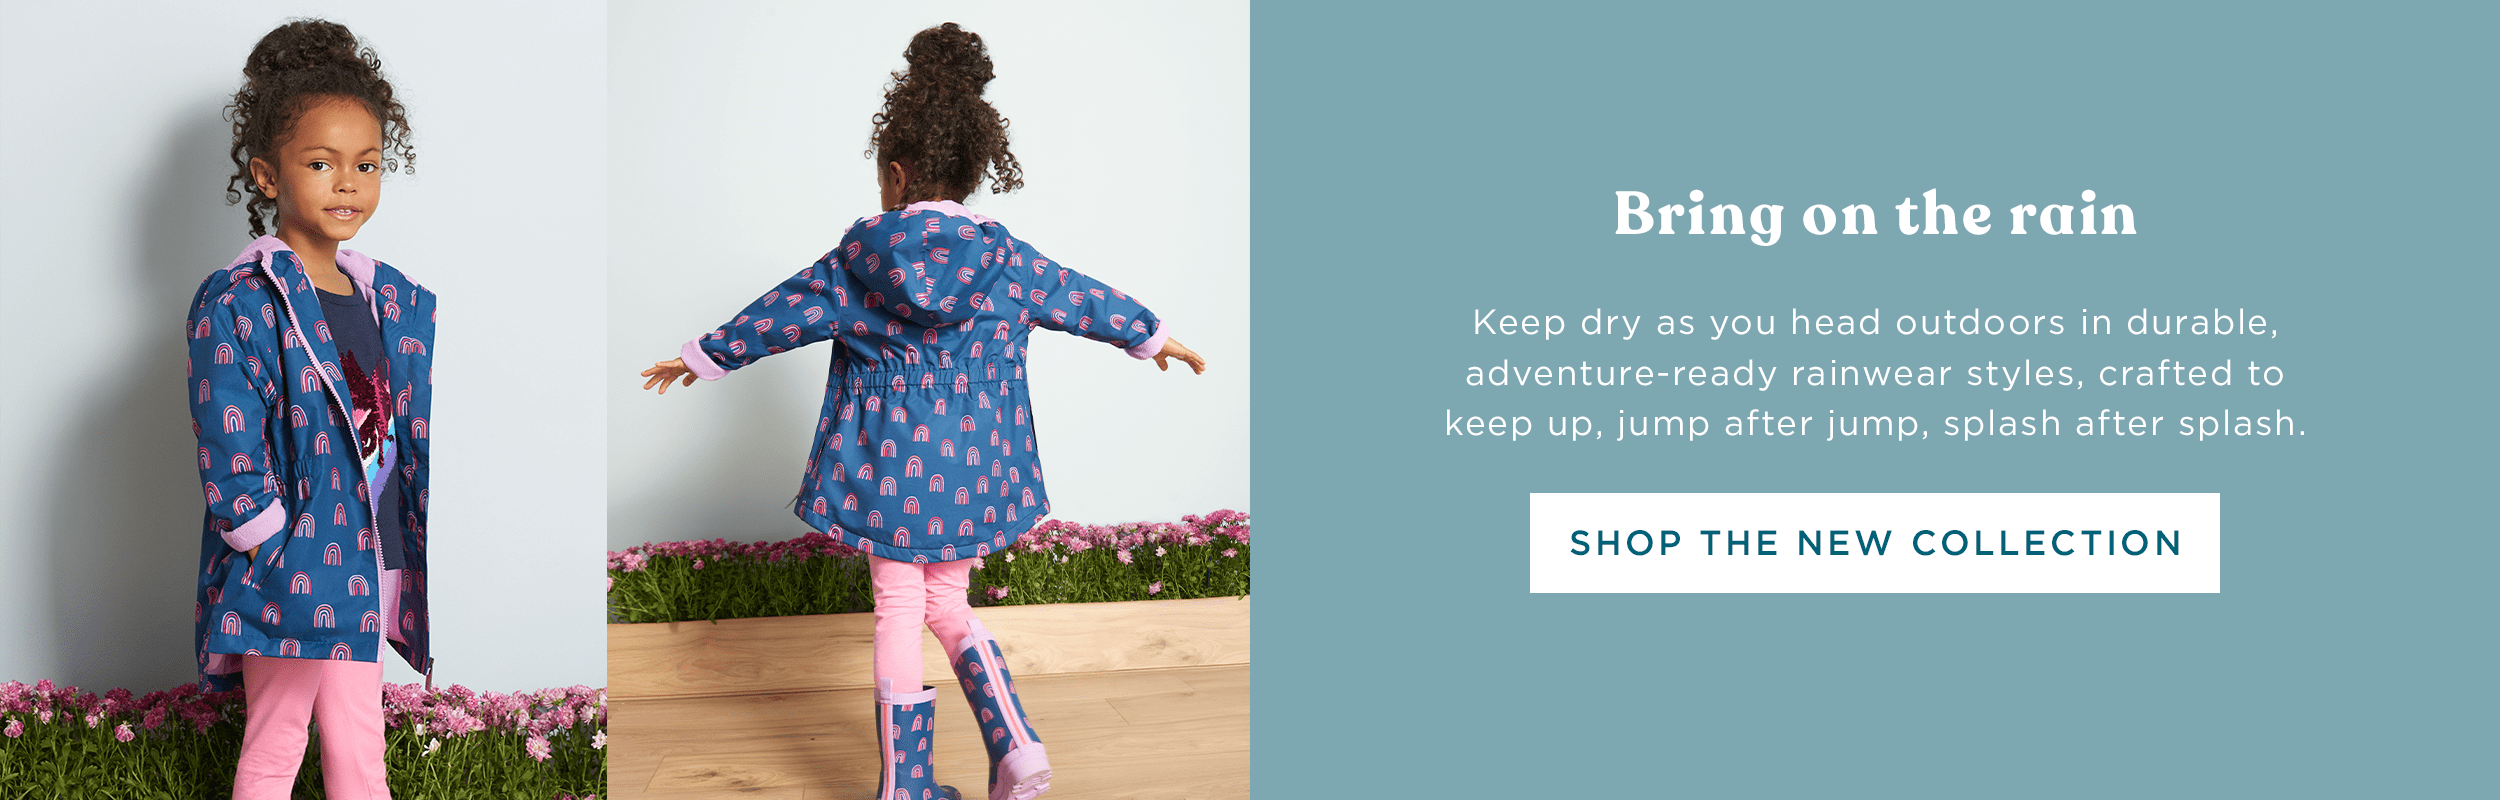 Shop new raincoats